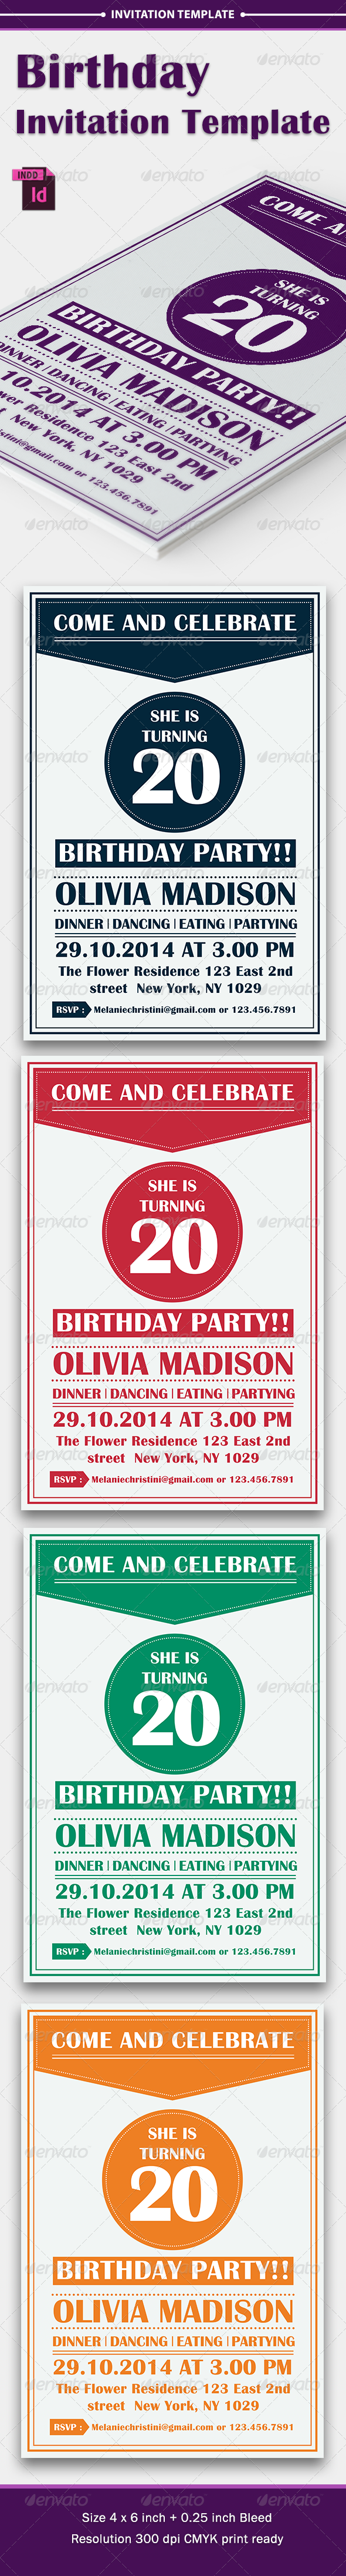 GraphicRiver Birthday Party Invitation Template Vol 4 8565131